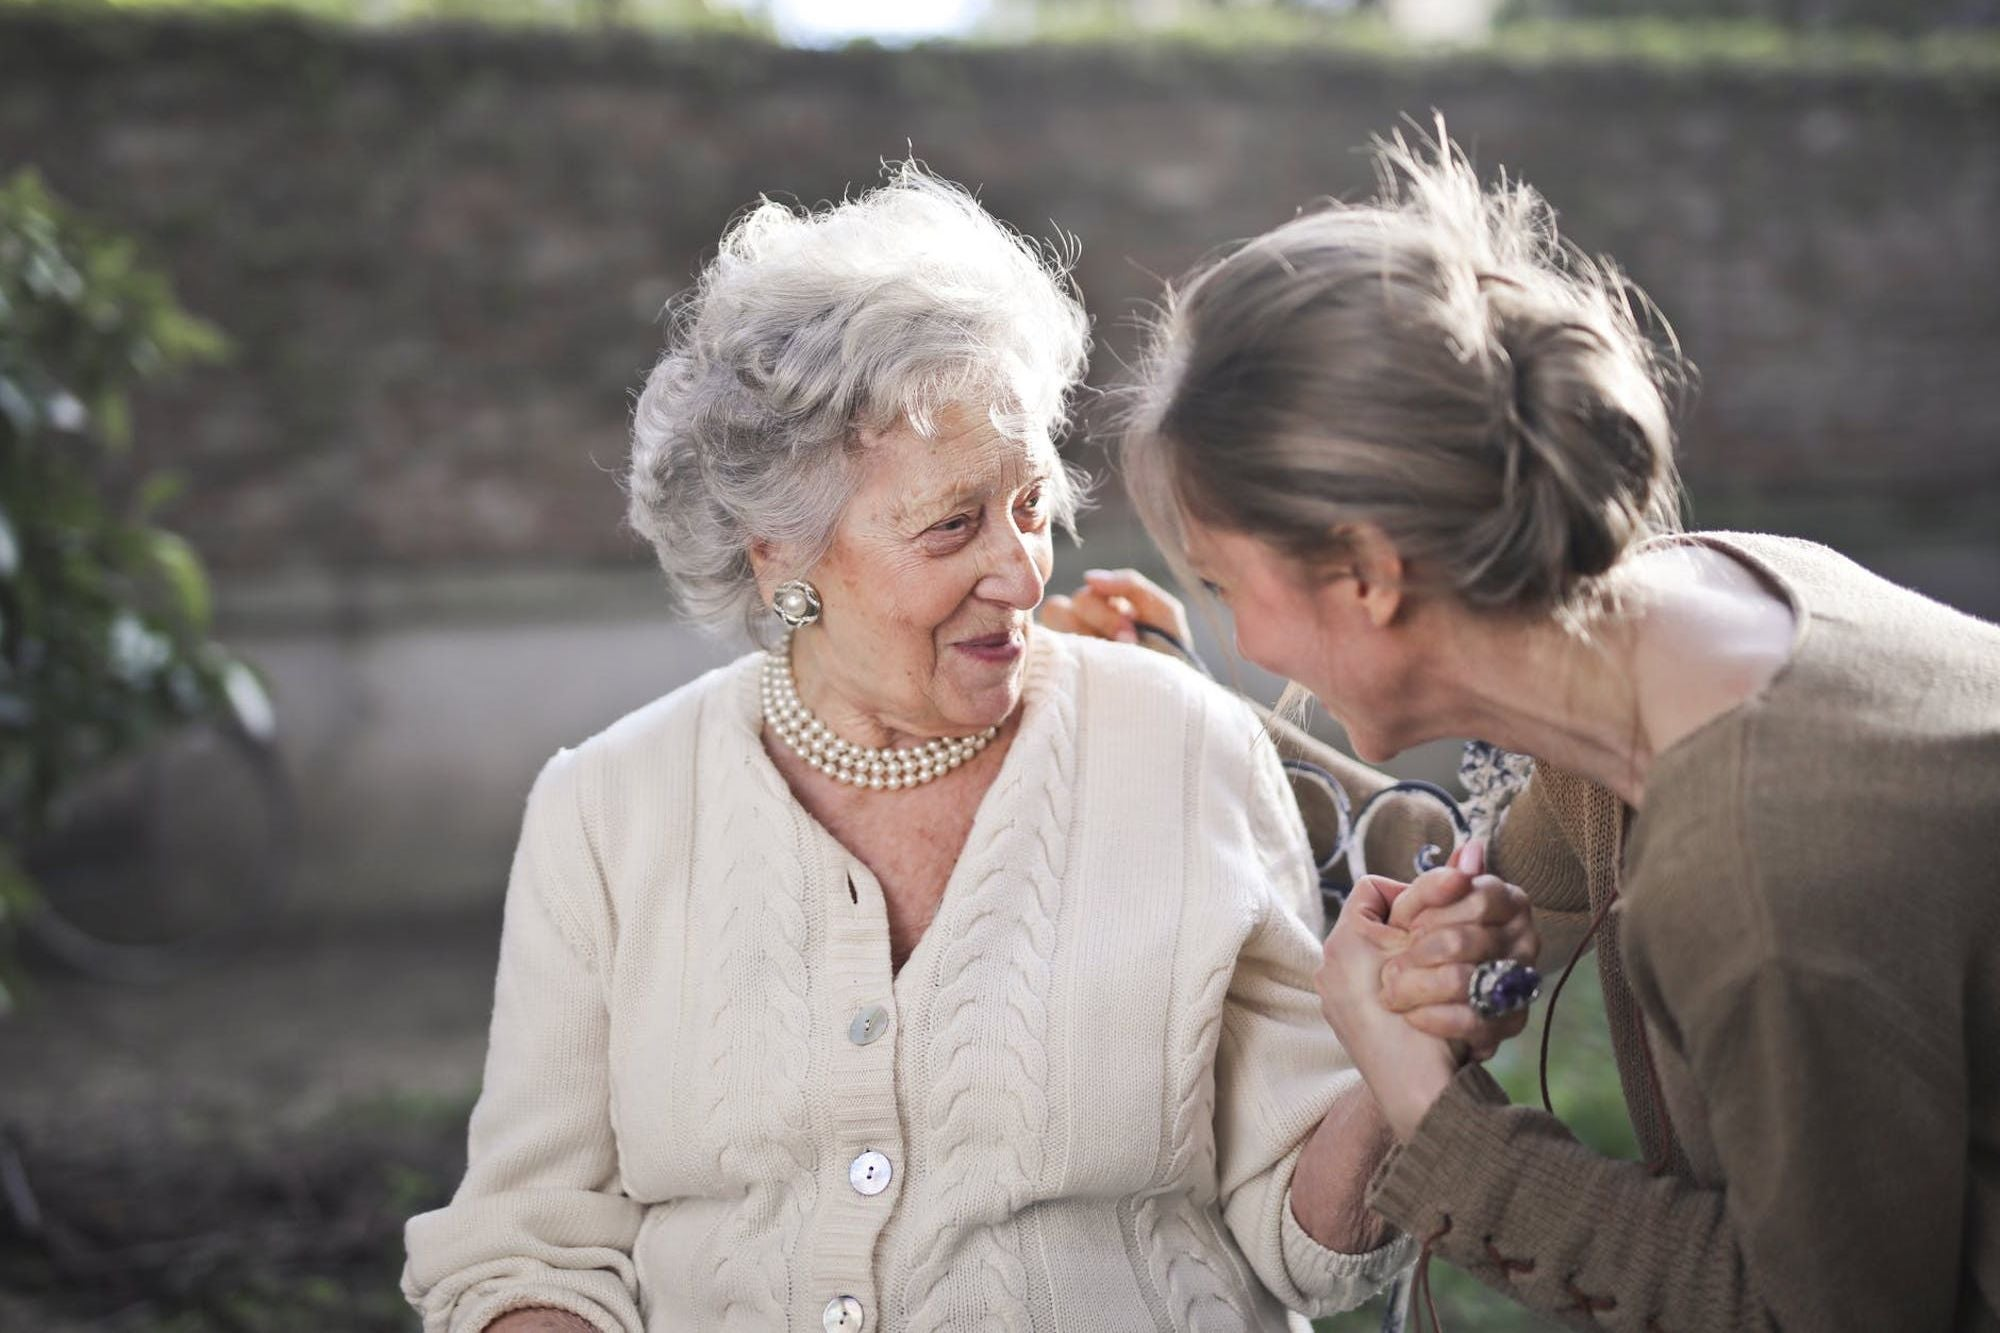 How to Show Mom You Love Her This Mother's Day While Social Distancing